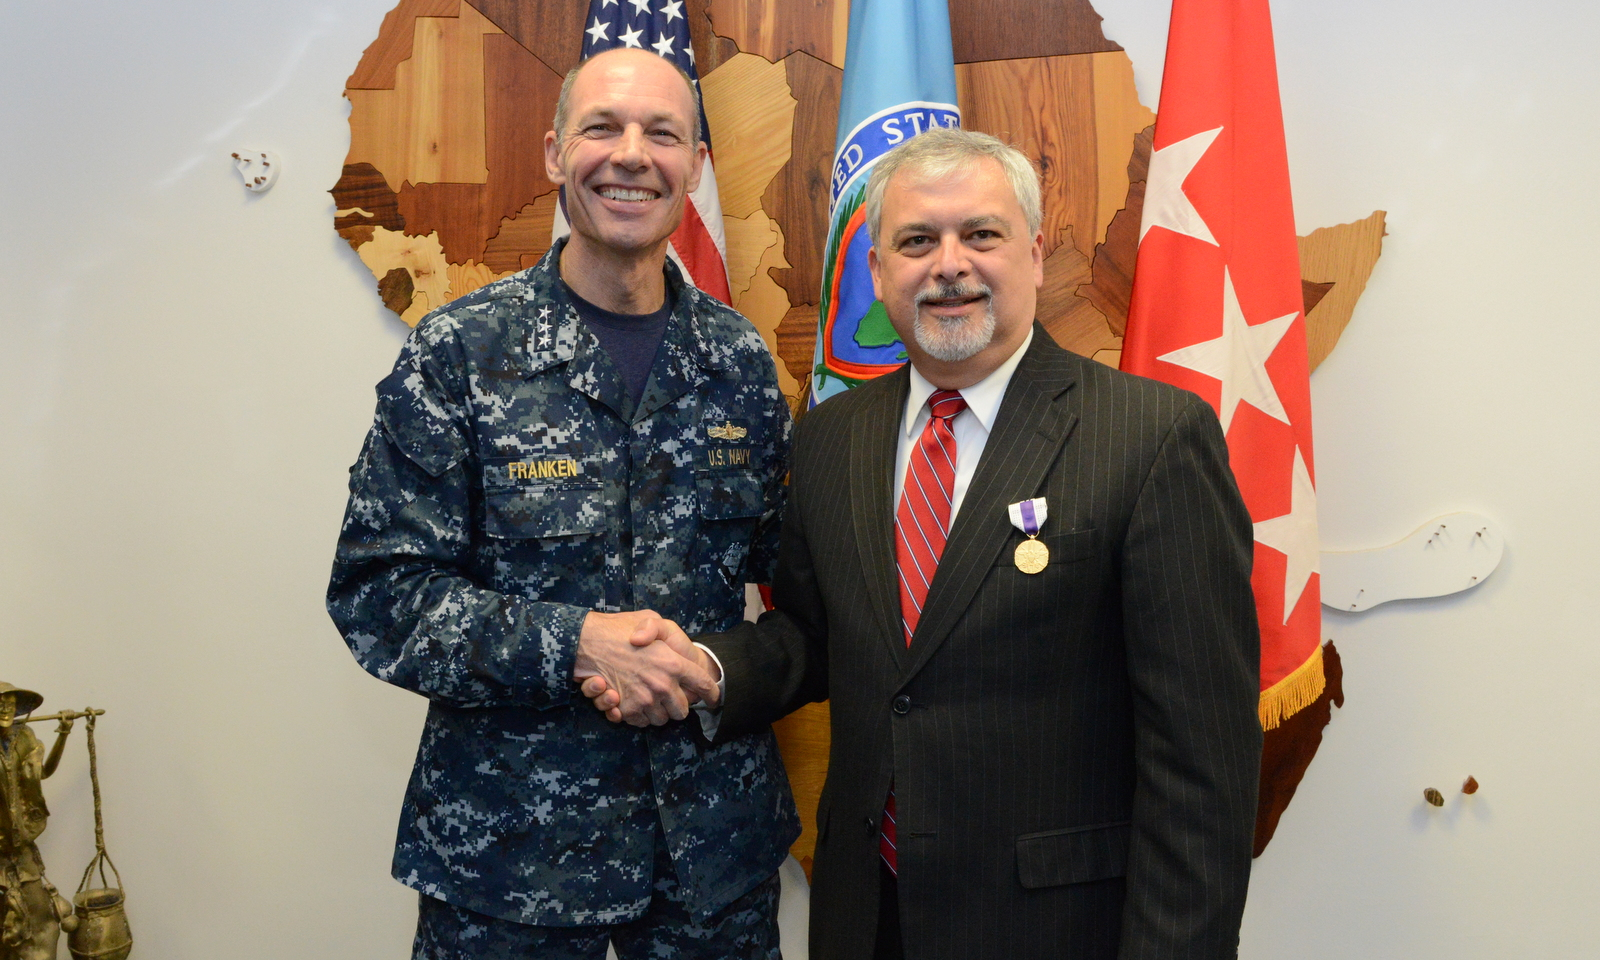 Ambassador Phillip Carter III, right, the outgoing deputy to the commander for civil military engagement with U.S. Africa Command, shakes hands with U.S. Navy Vice Adm. Michael T. Franken, the AFRICOM deputy to the commander for military operations, after Carter received the Joint Distinguished Civilian Service Award during a ceremony at Kelley Barracks, U.S. Army Garrison Stuttgart, Germany, Sept. 17, 2015. Carter served as the commander's senior diplomat and civilian advisor to the commander since November 2013.